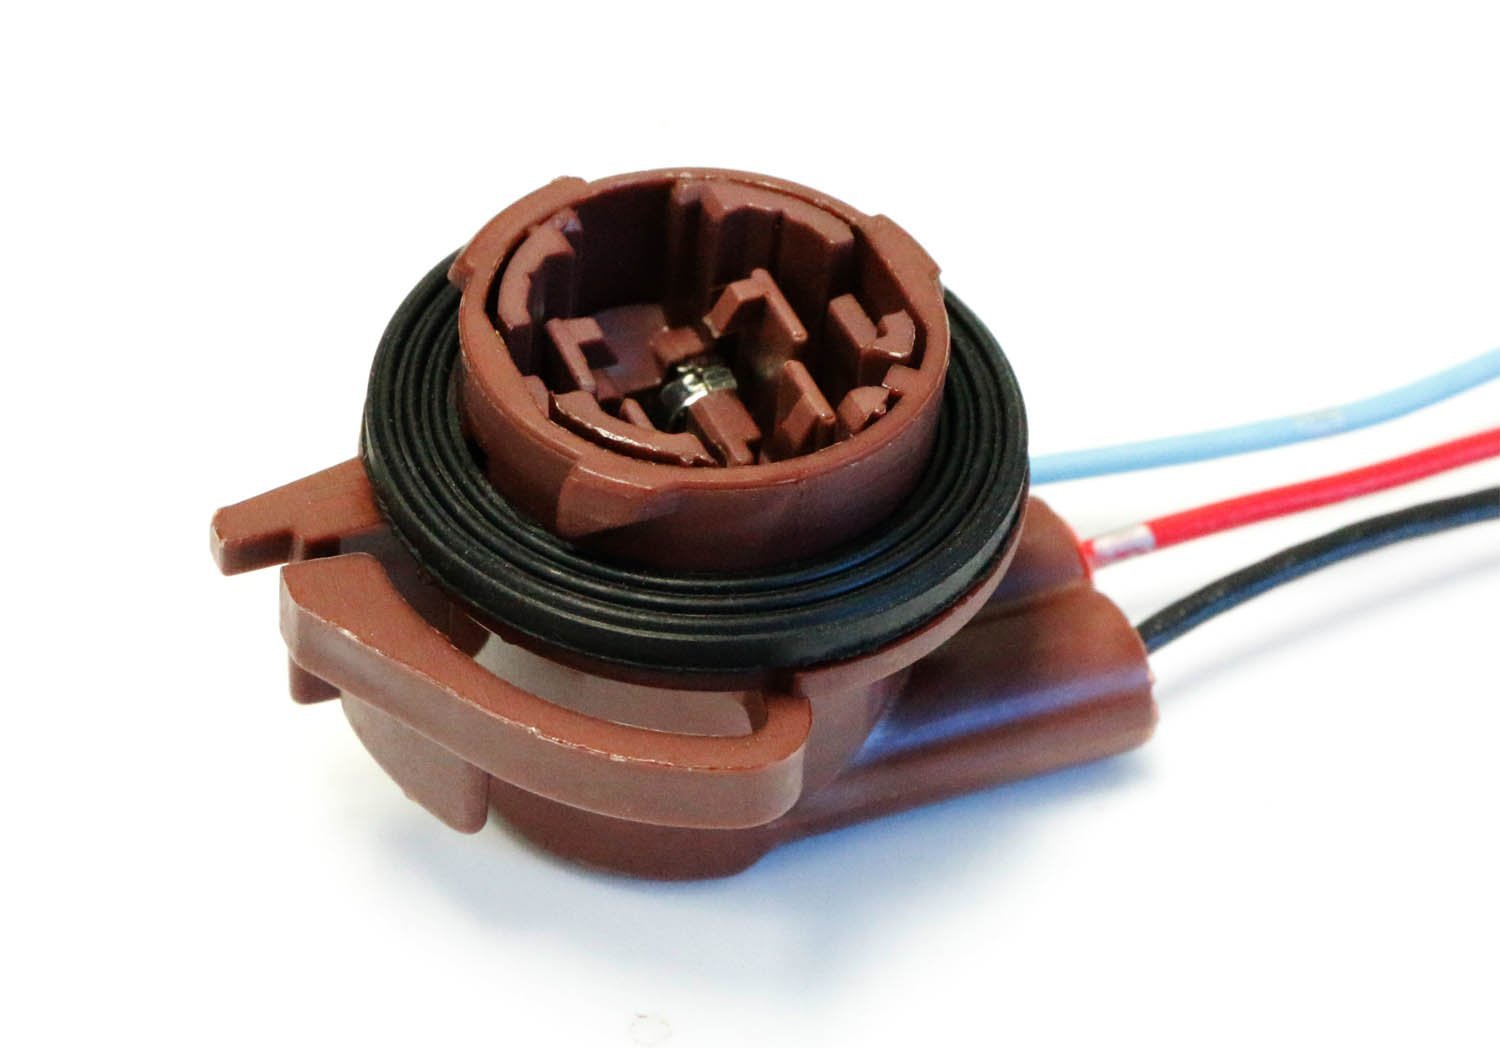 Ijdmtoy 2 3156 3157 Pre Wired Harness Sockets For Wiring Adaptors The Wj Repair Replacement Install Led Bulbs Turn Signal Lights Drl Lamps Or Brake Tail